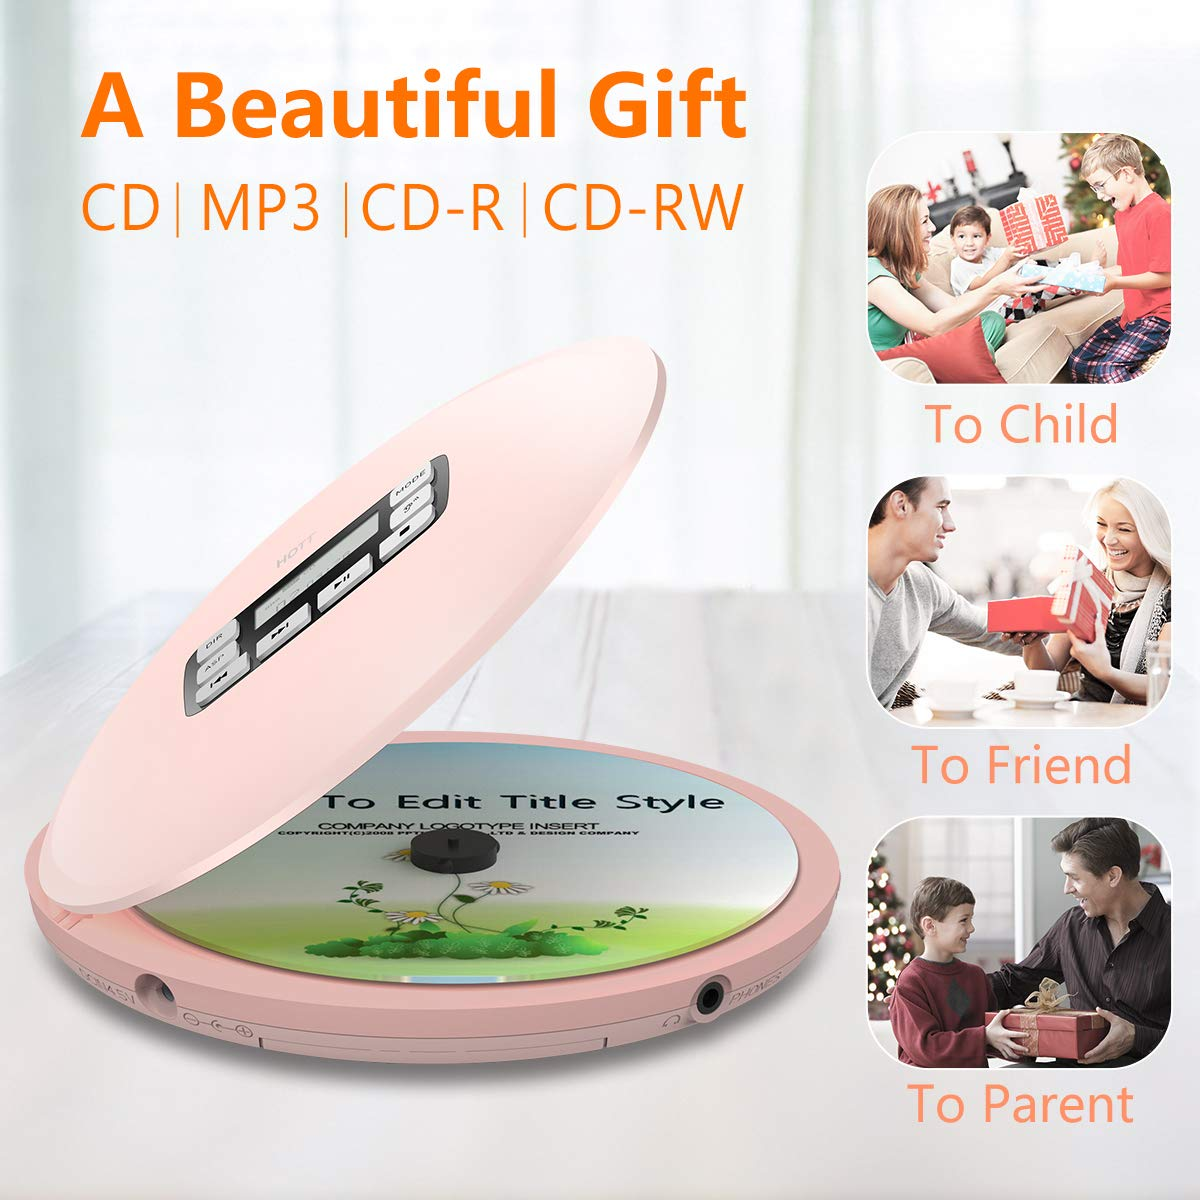 Portable CD Player,HOTT CD611 Small Walkman CD Player with Stereo Headphones USB Cable LED Display Anti-Skip Anti-Shock Personal Compact Disc Music Player (Pink)